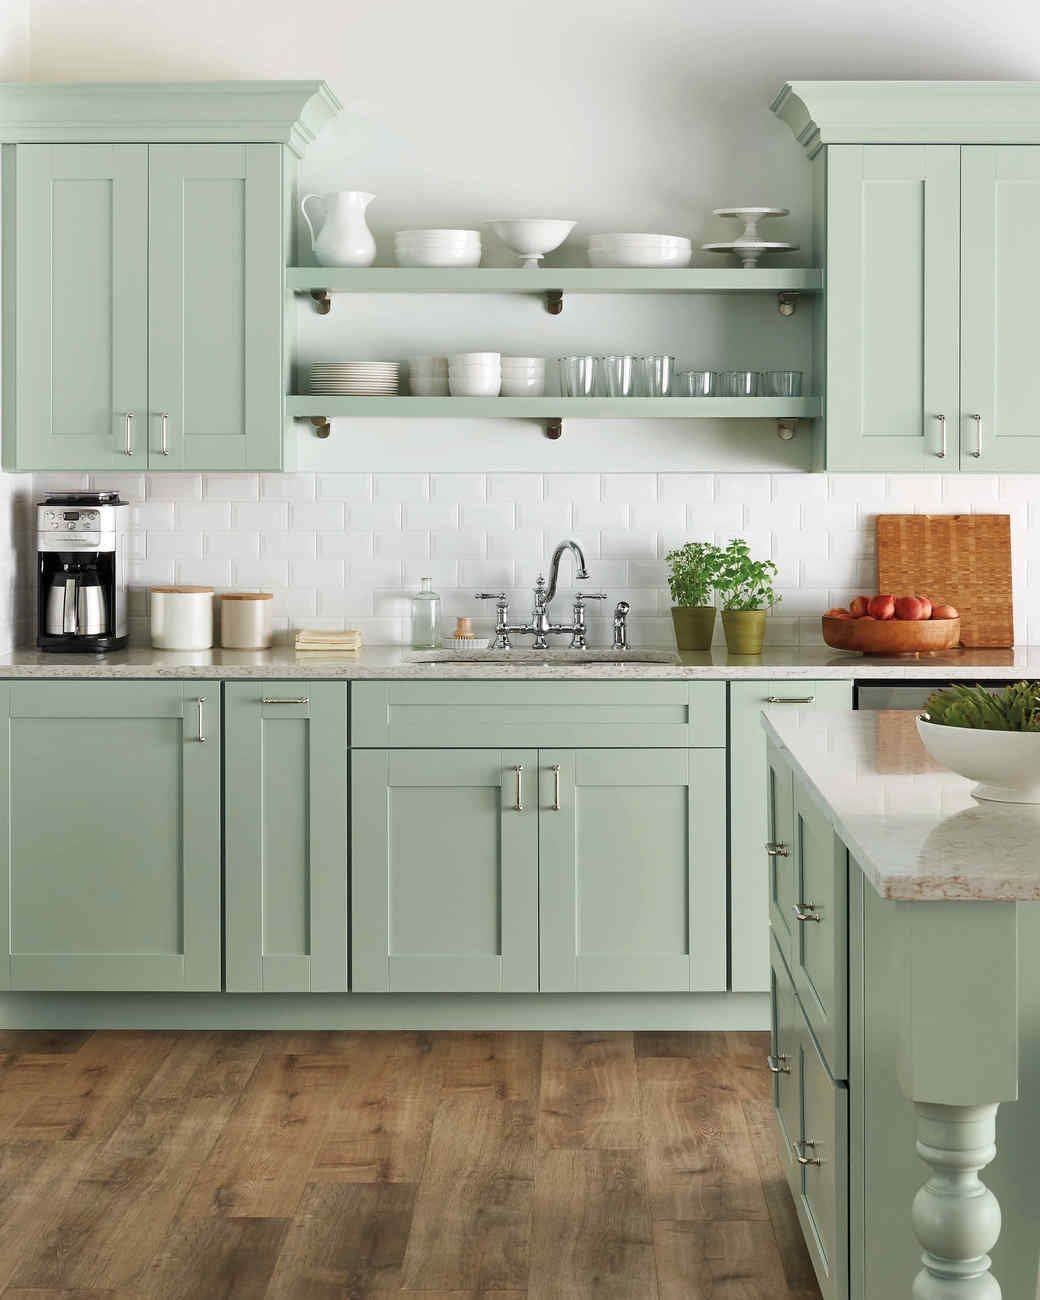 Home Depot Select Kitchen Style Green Cabinets Home Depot Kitchen Cottage Kitchen Design Green Kitchen Cabinets